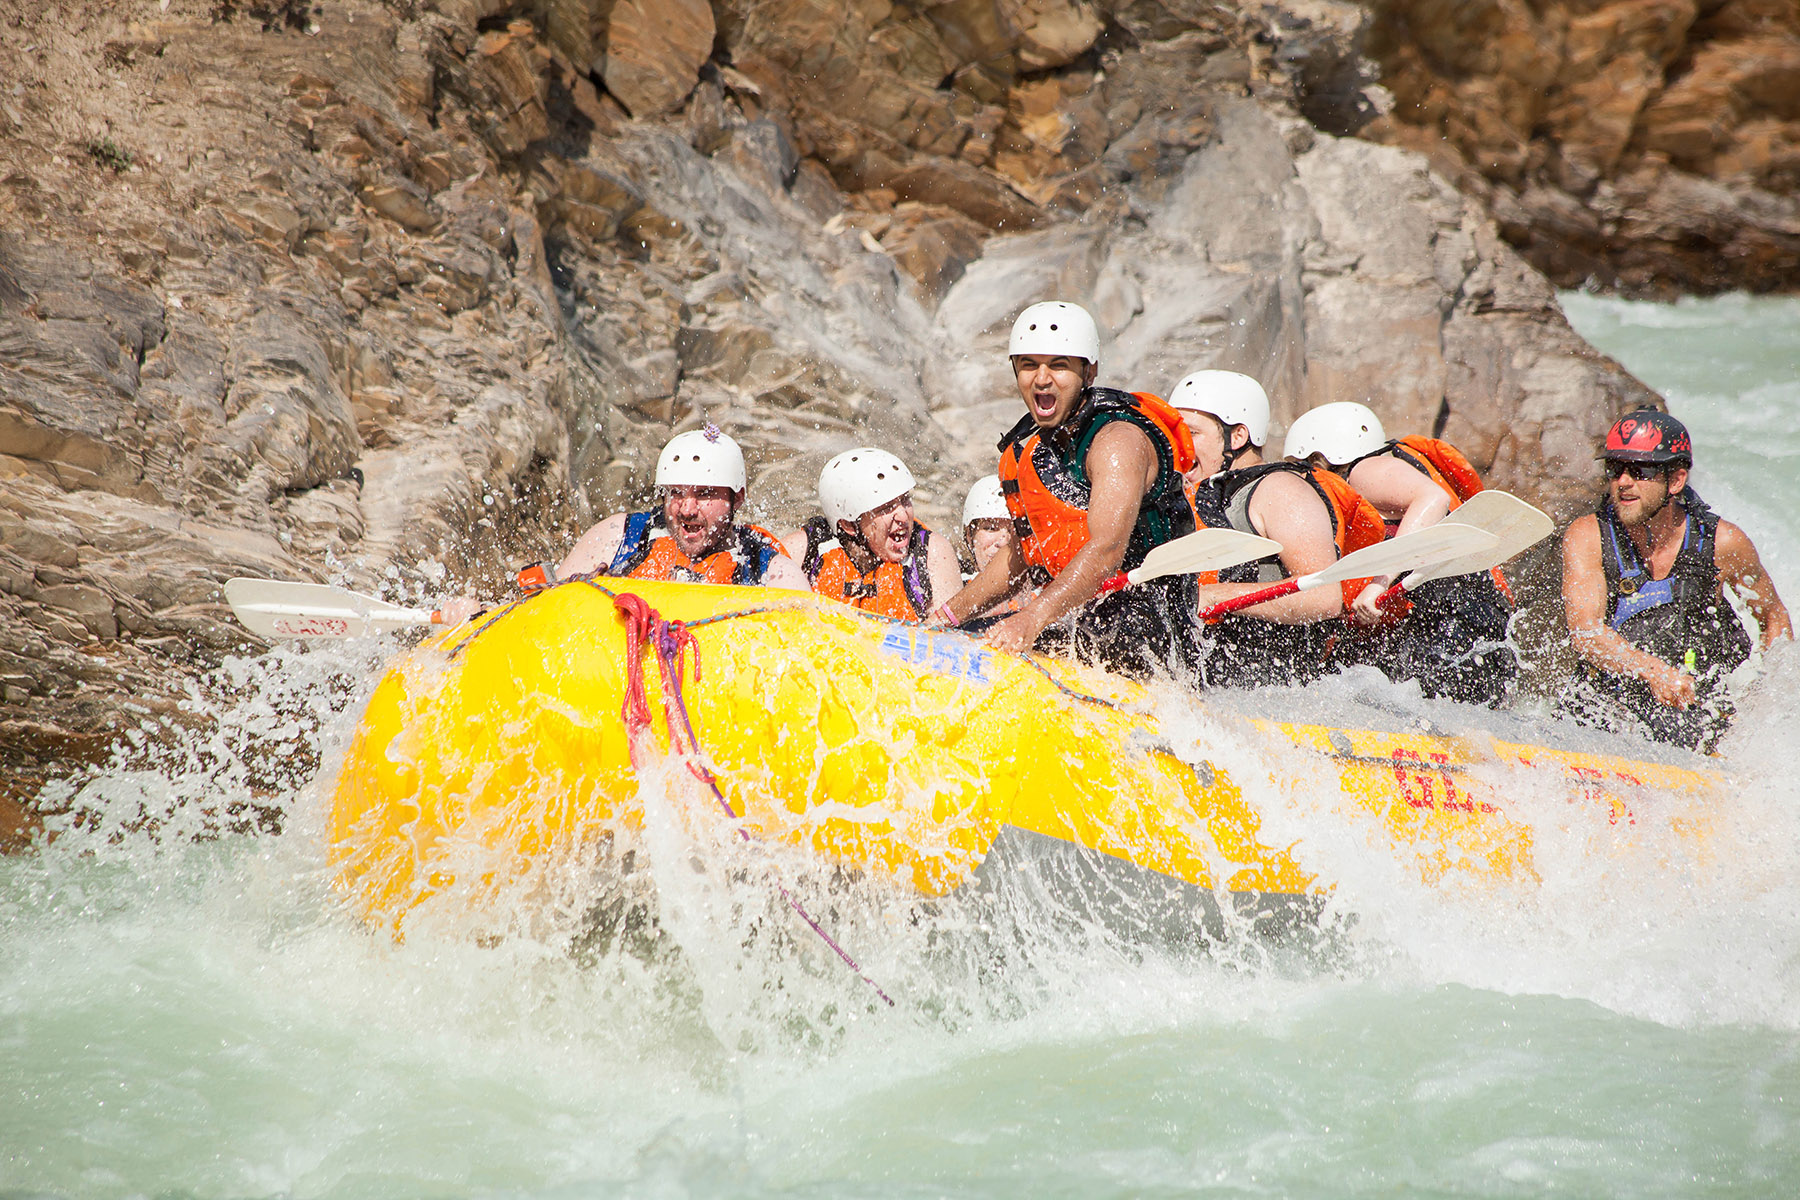 A raft in Shotgun in the middle canyon